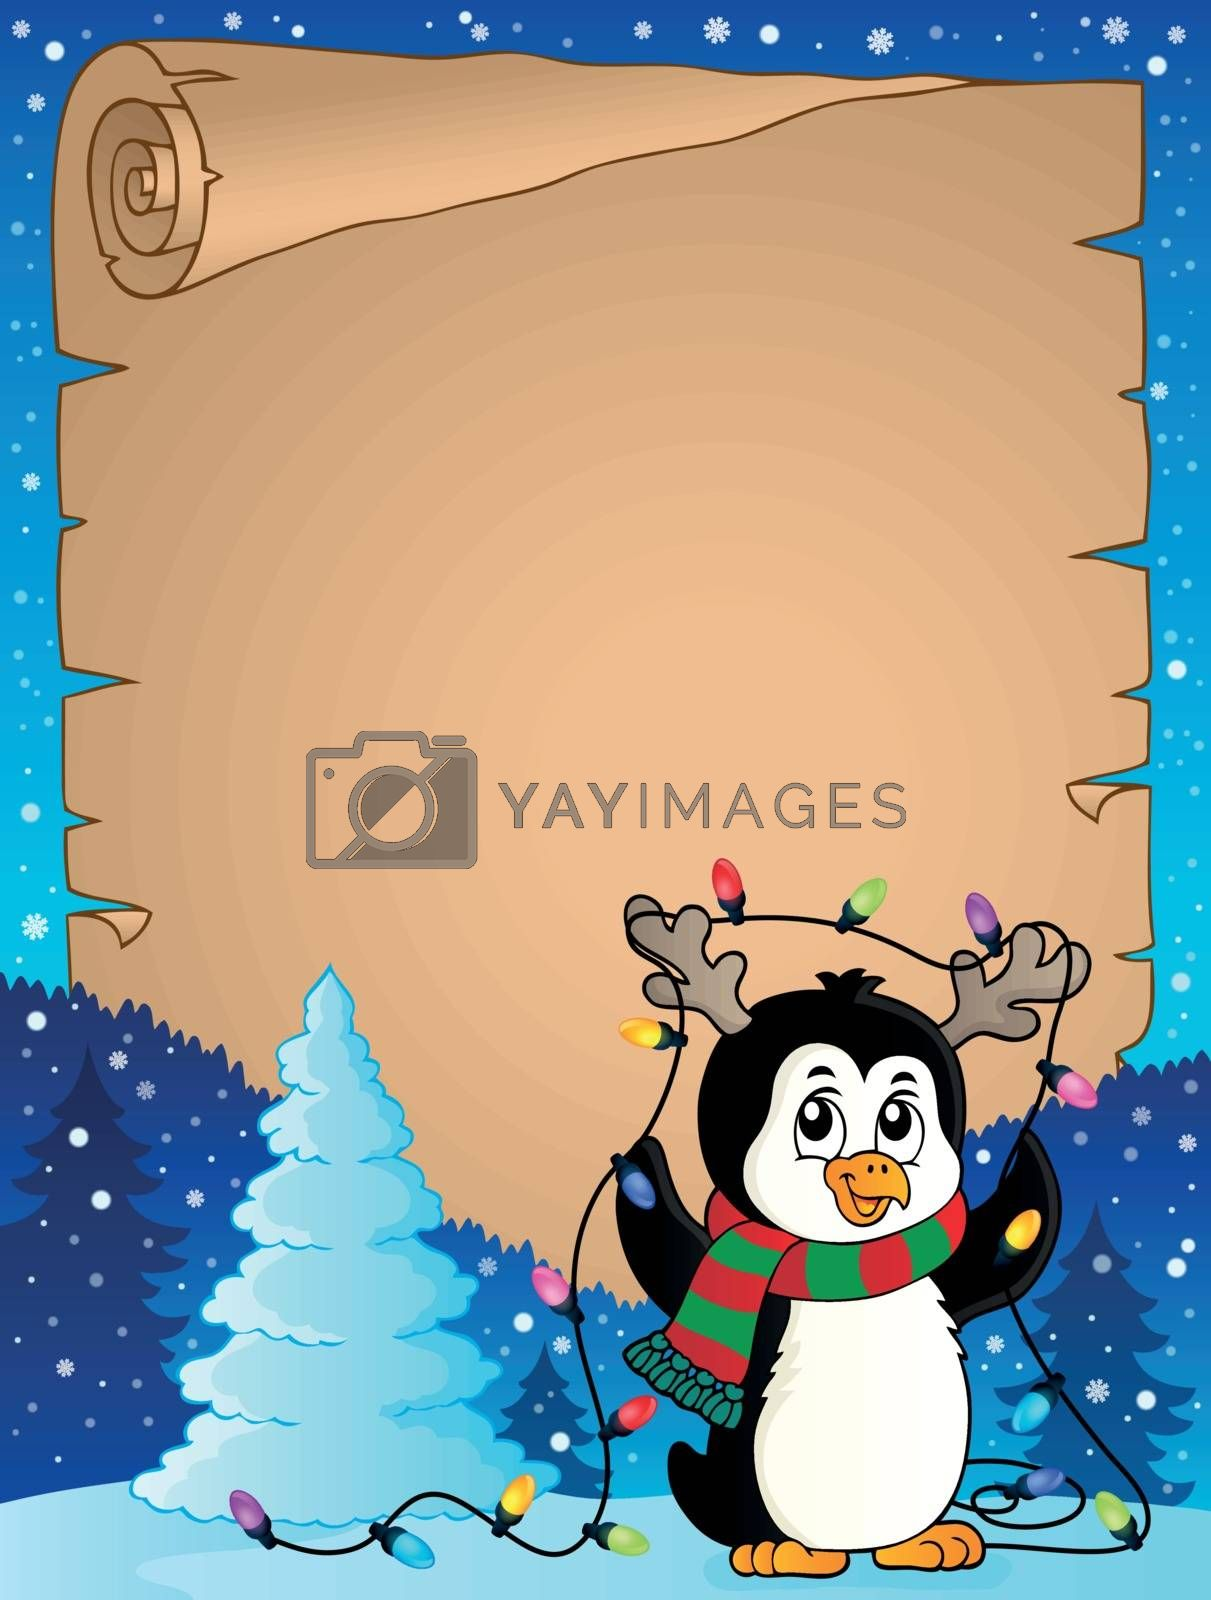 Penguin and Christmas lights parchment 1 - eps10 vector illustration.